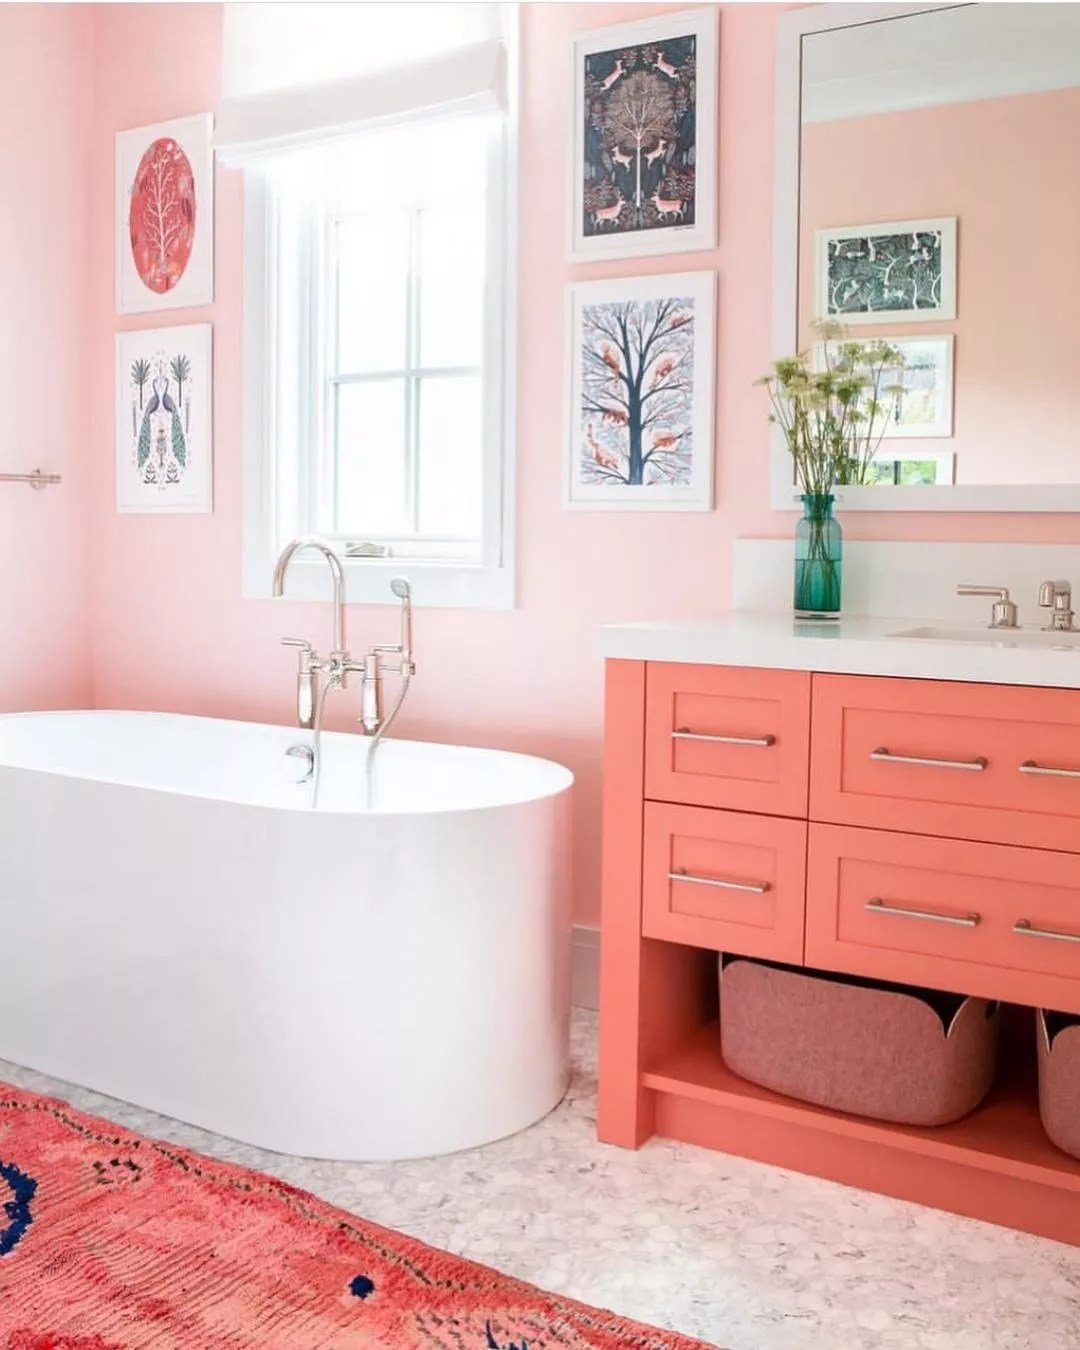 Bathroom with all pink walls and counters and bathtub. Photo by Instagram user @selliottphoto